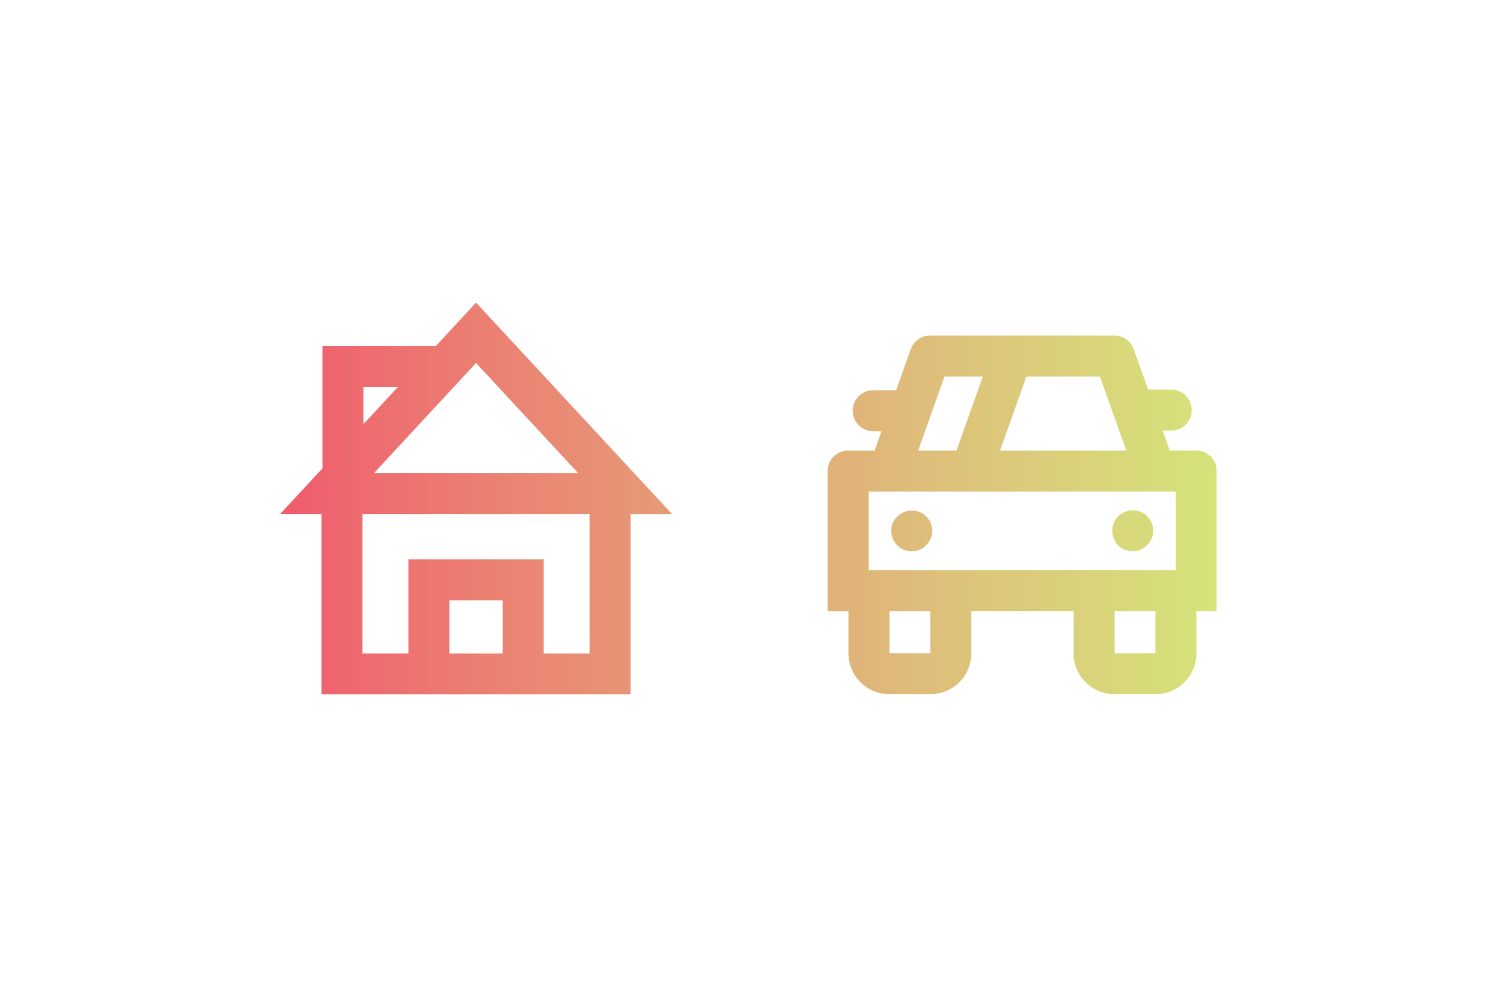 TCo_Eastercamp15_Icons_House-Car.png